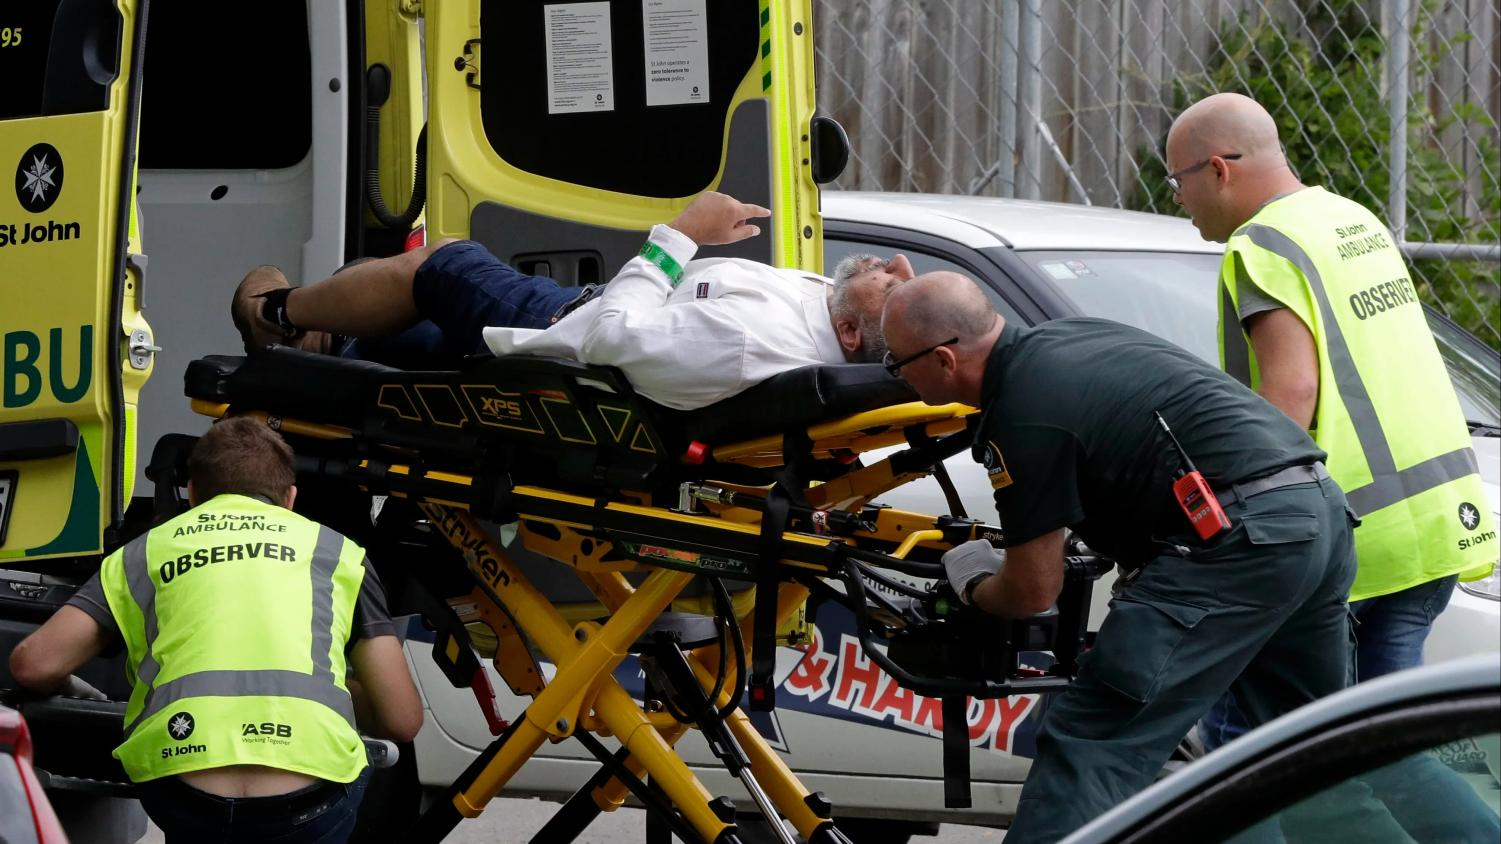 Shooting at a mosk in New Zealand devastated the country on March 15